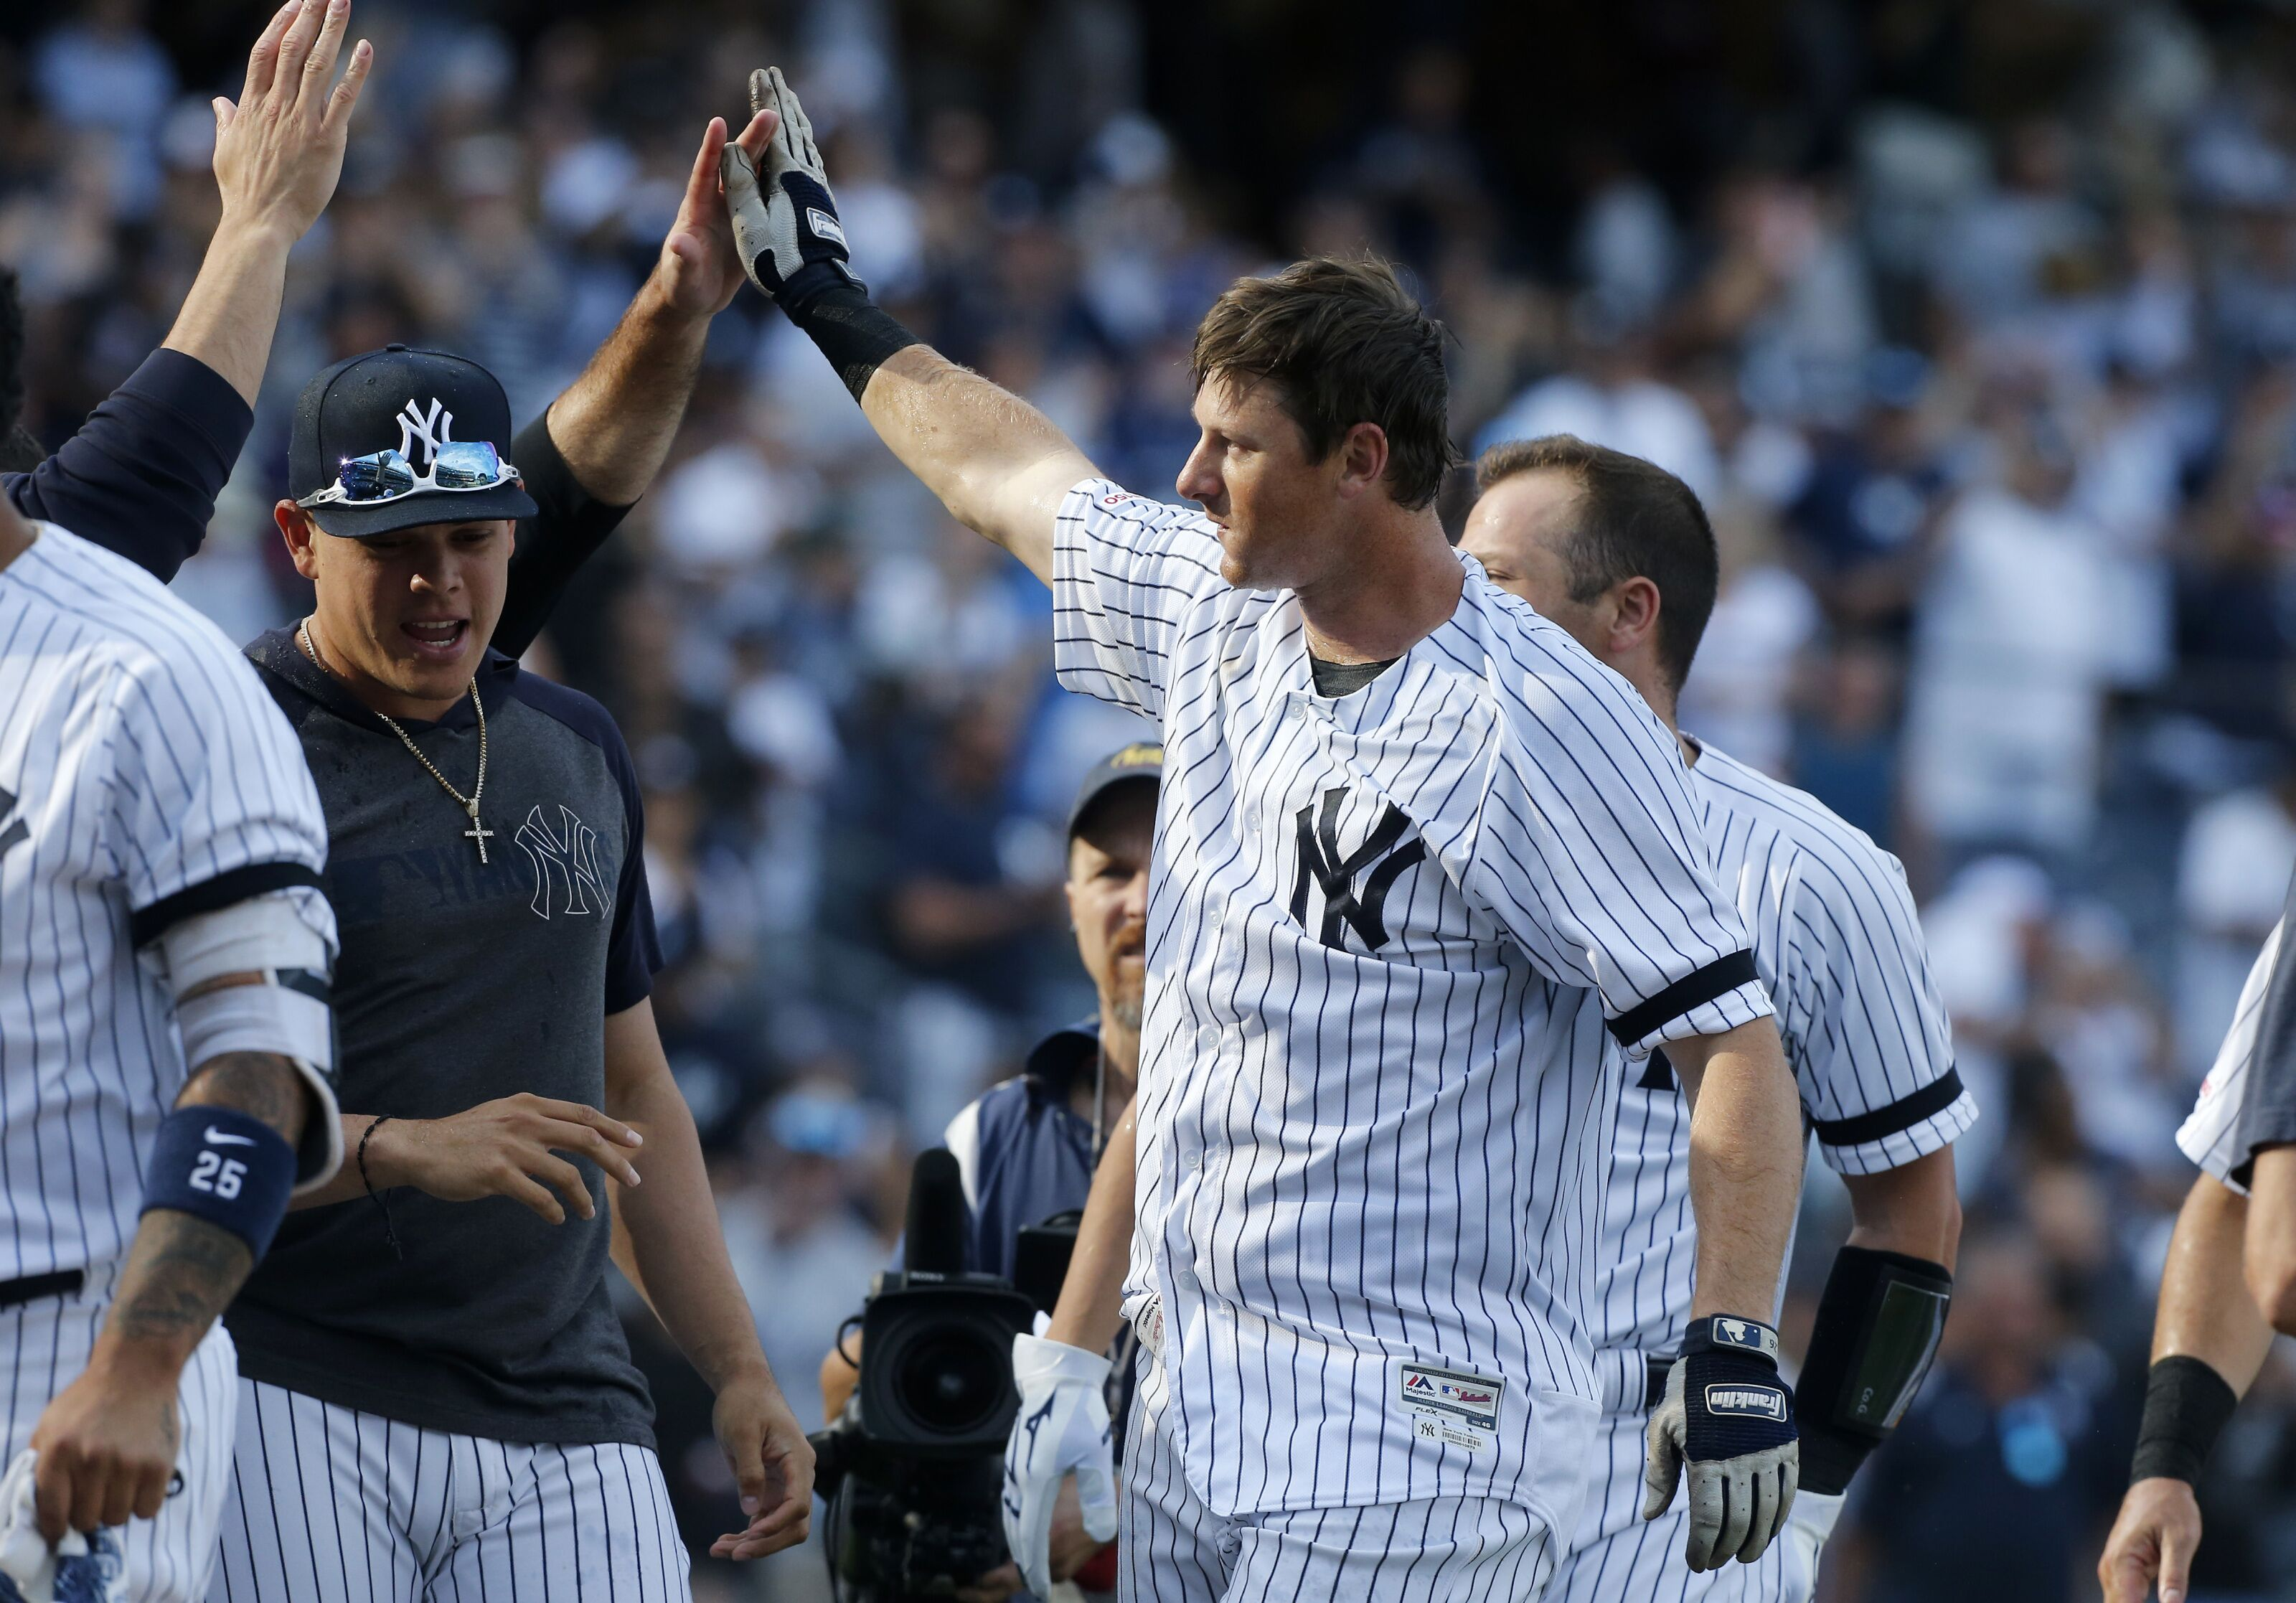 Yankees: Should they offer D.J. LeMahieu a contract extension?